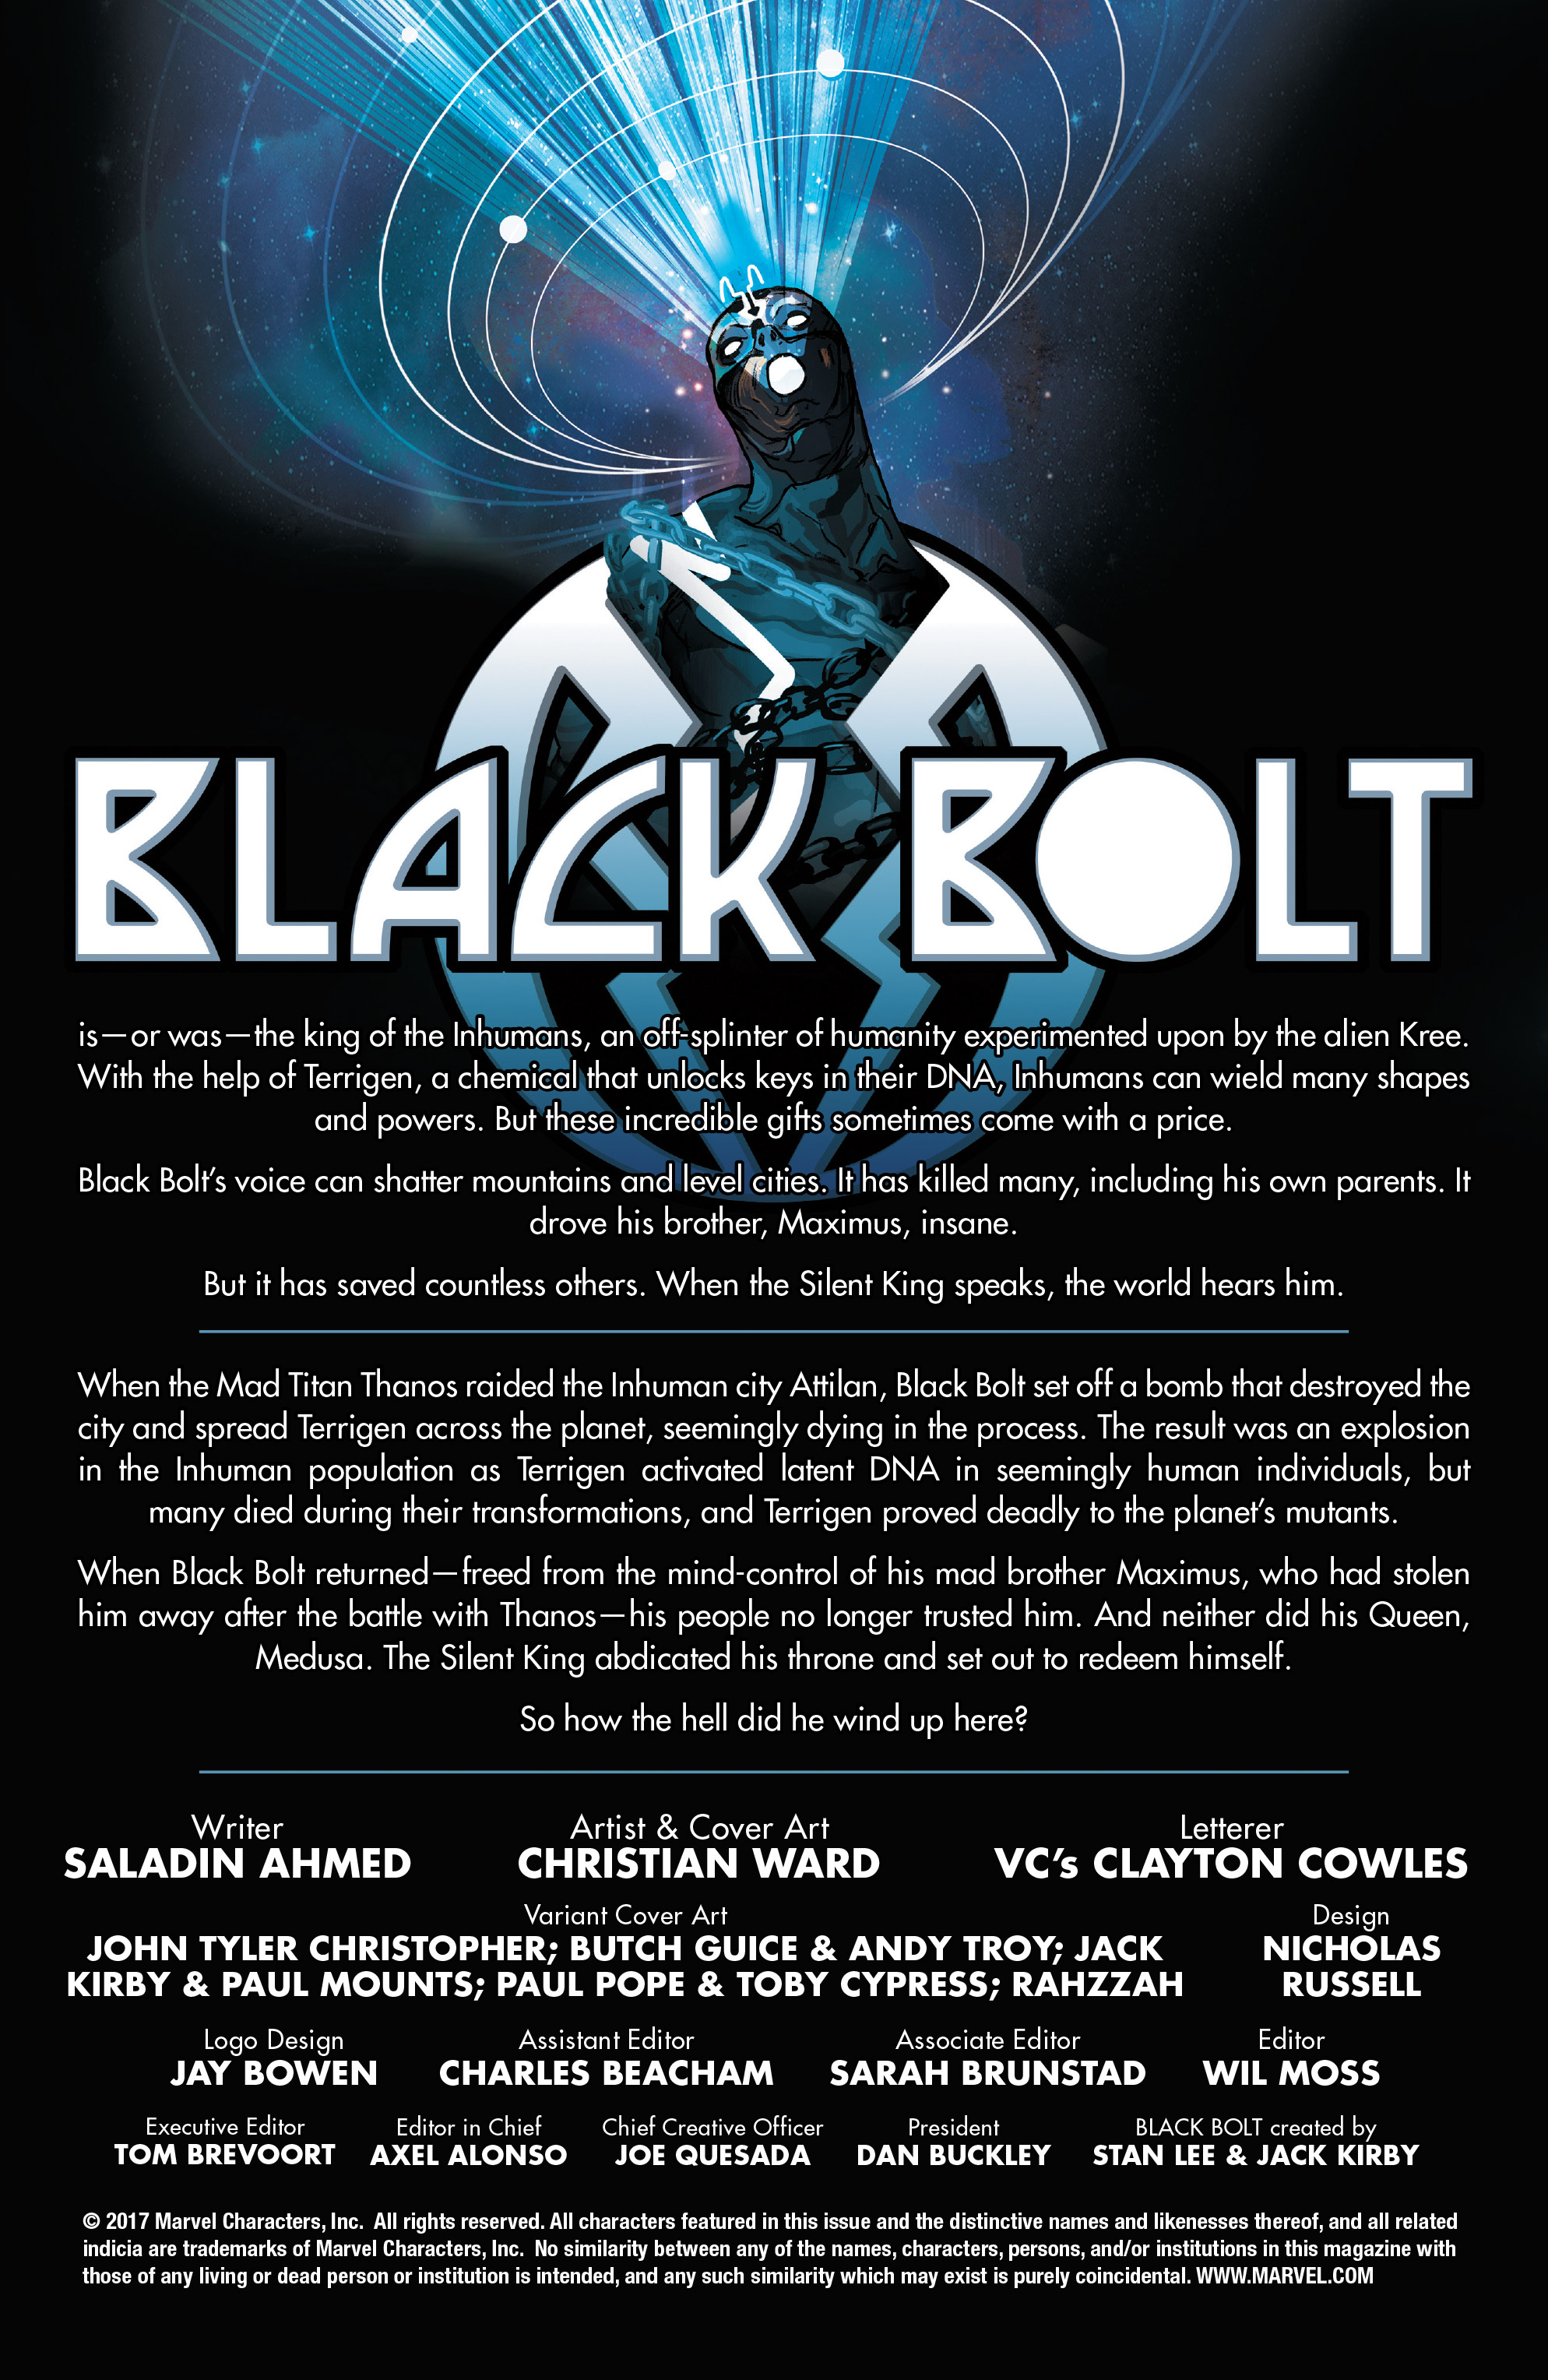 Read online Black Bolt comic -  Issue #1 - 2